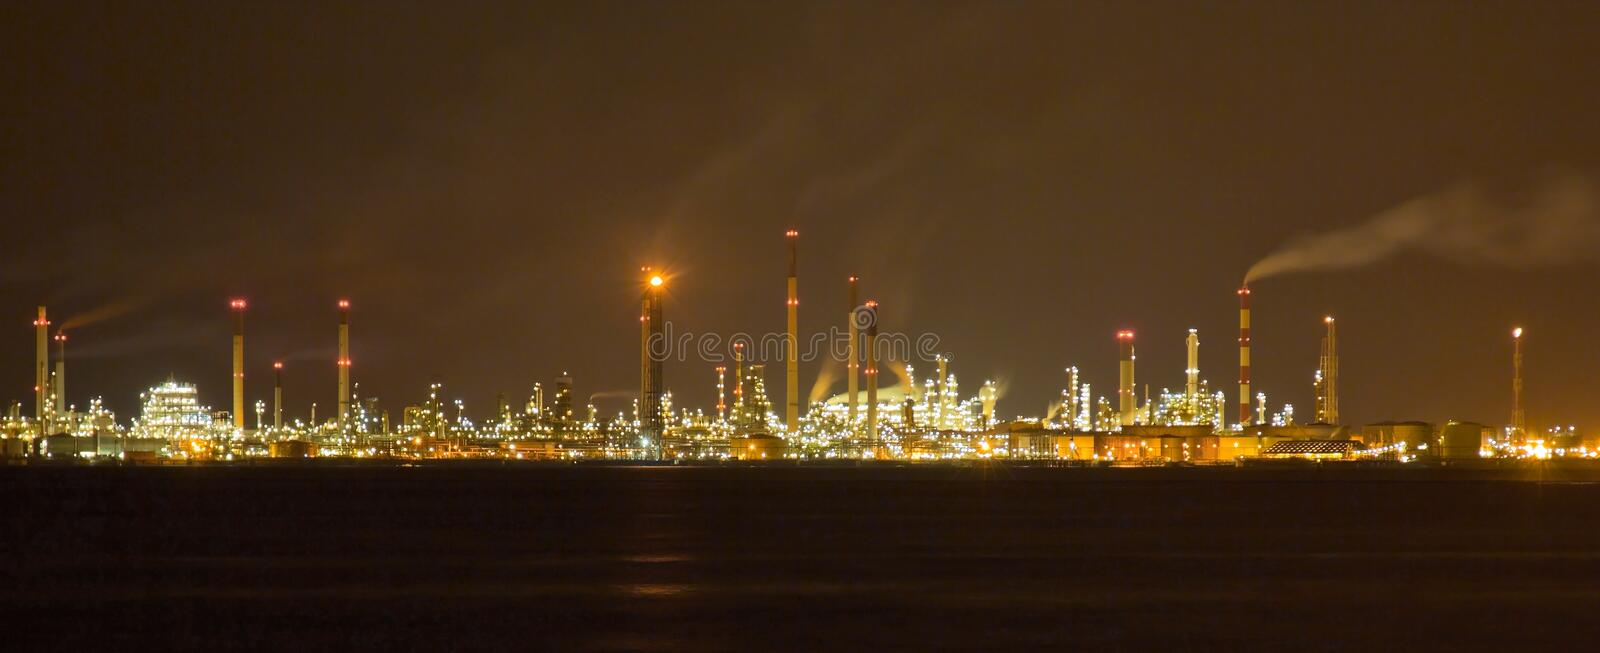 Singapore Oil Refinery and Manufacturing Plants. Nightscape of the oil refinery and chemical manufacturing plants located on Pulau Bukom, Singapore. It is stock photo